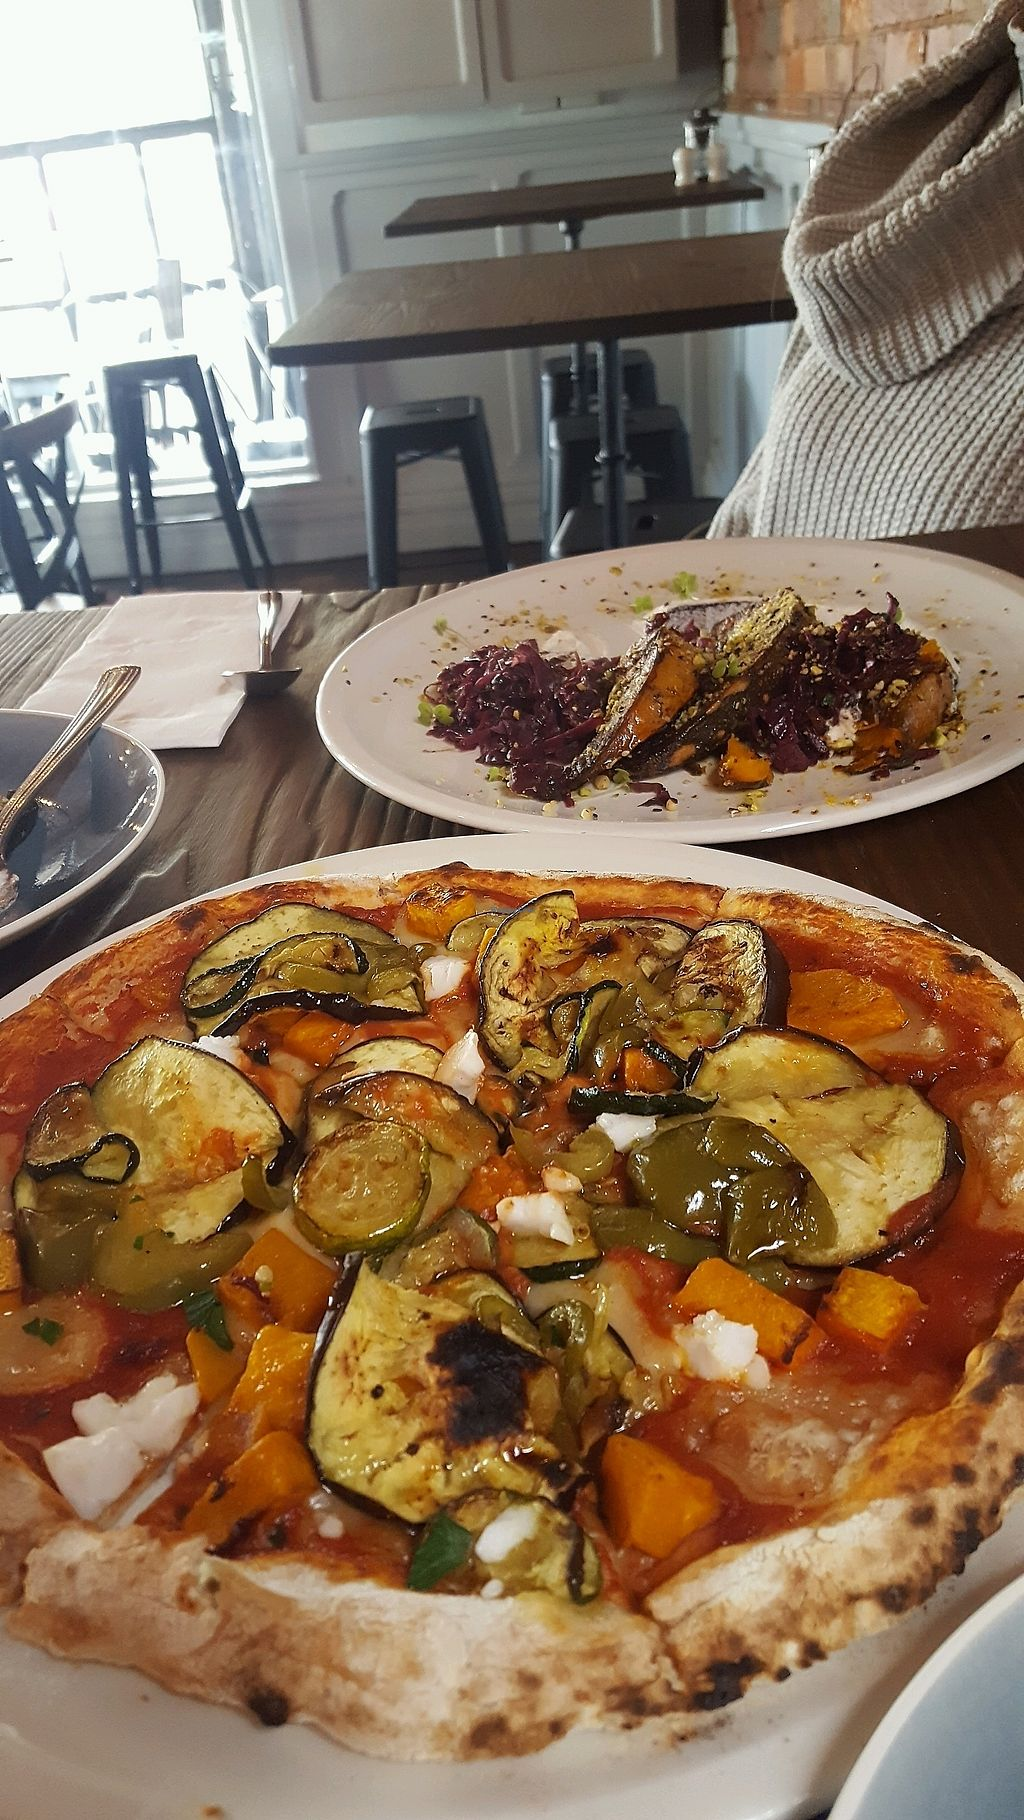 """Photo of Billy & Lucy  by <a href=""""/members/profile/Christoveg"""">Christoveg</a> <br/>Pizza & Dukkah Spiced Pumpkin  <br/> March 24, 2018  - <a href='/contact/abuse/image/114715/375098'>Report</a>"""